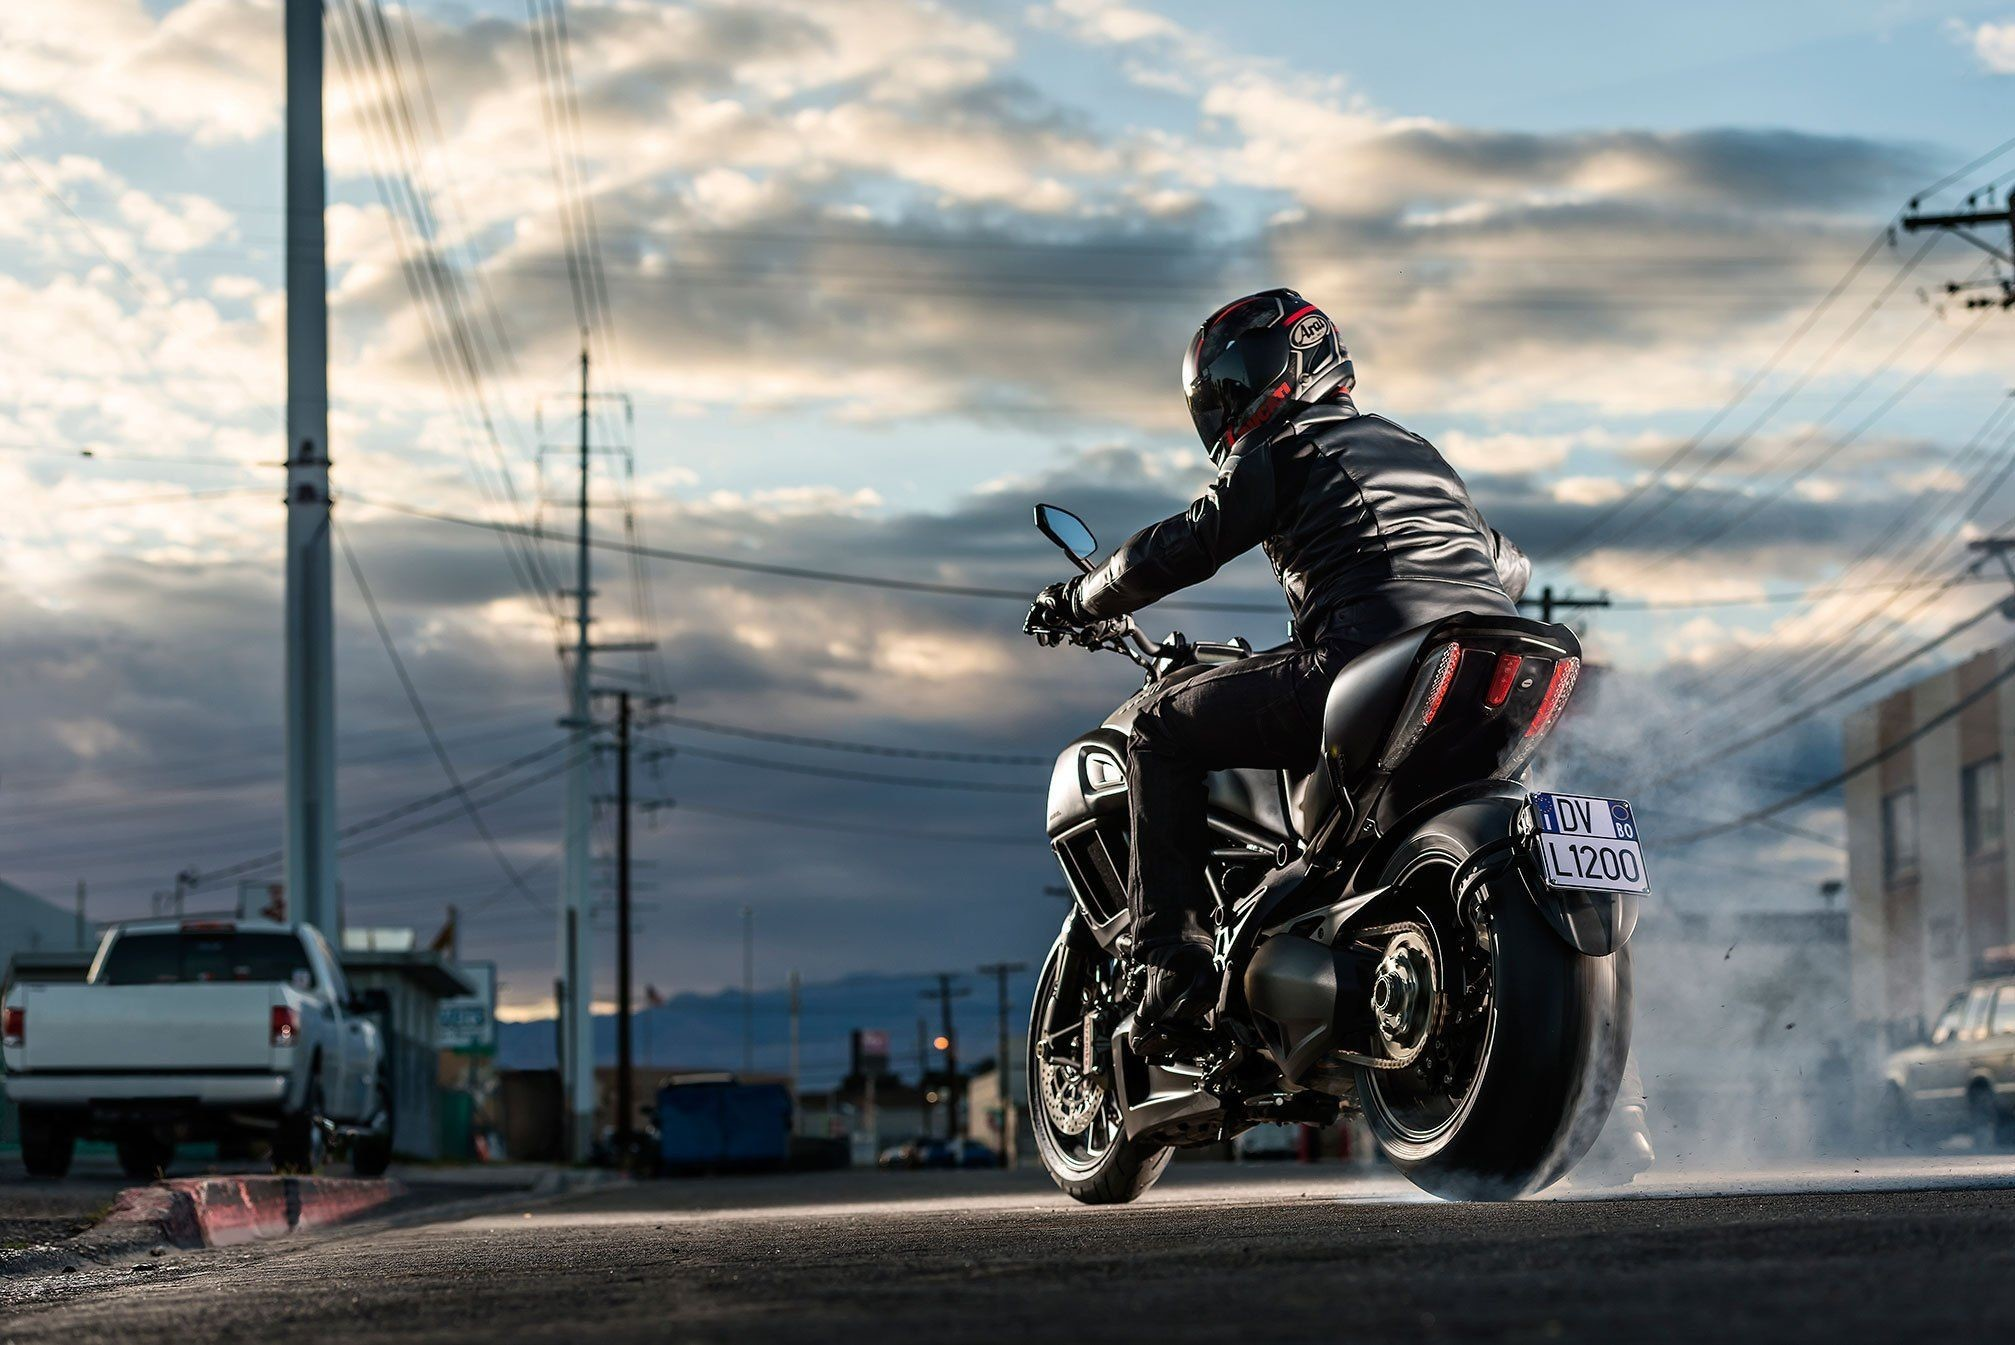 Res: 2015x1345, 1920x1080 Vintage Motorcycle Wallpapers High Quality Resolution